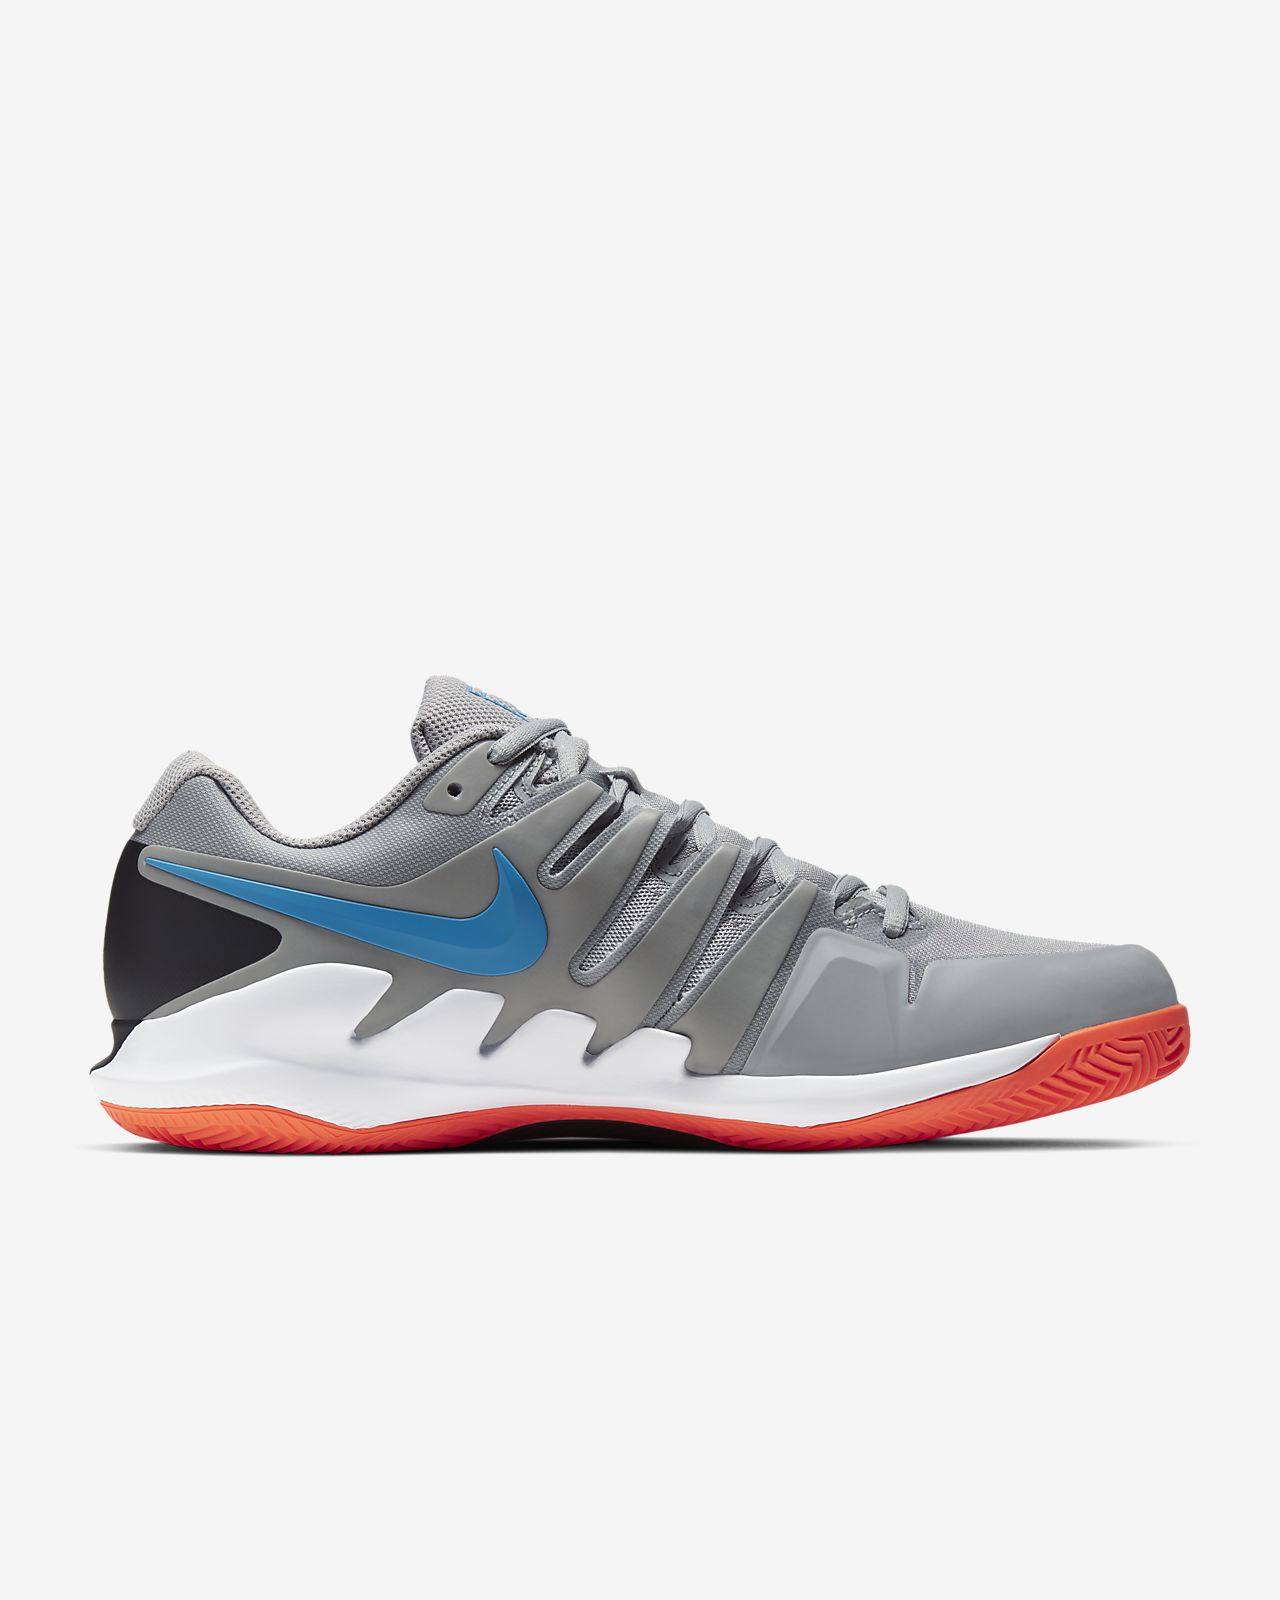 chaussures tennis nike homme terre battue